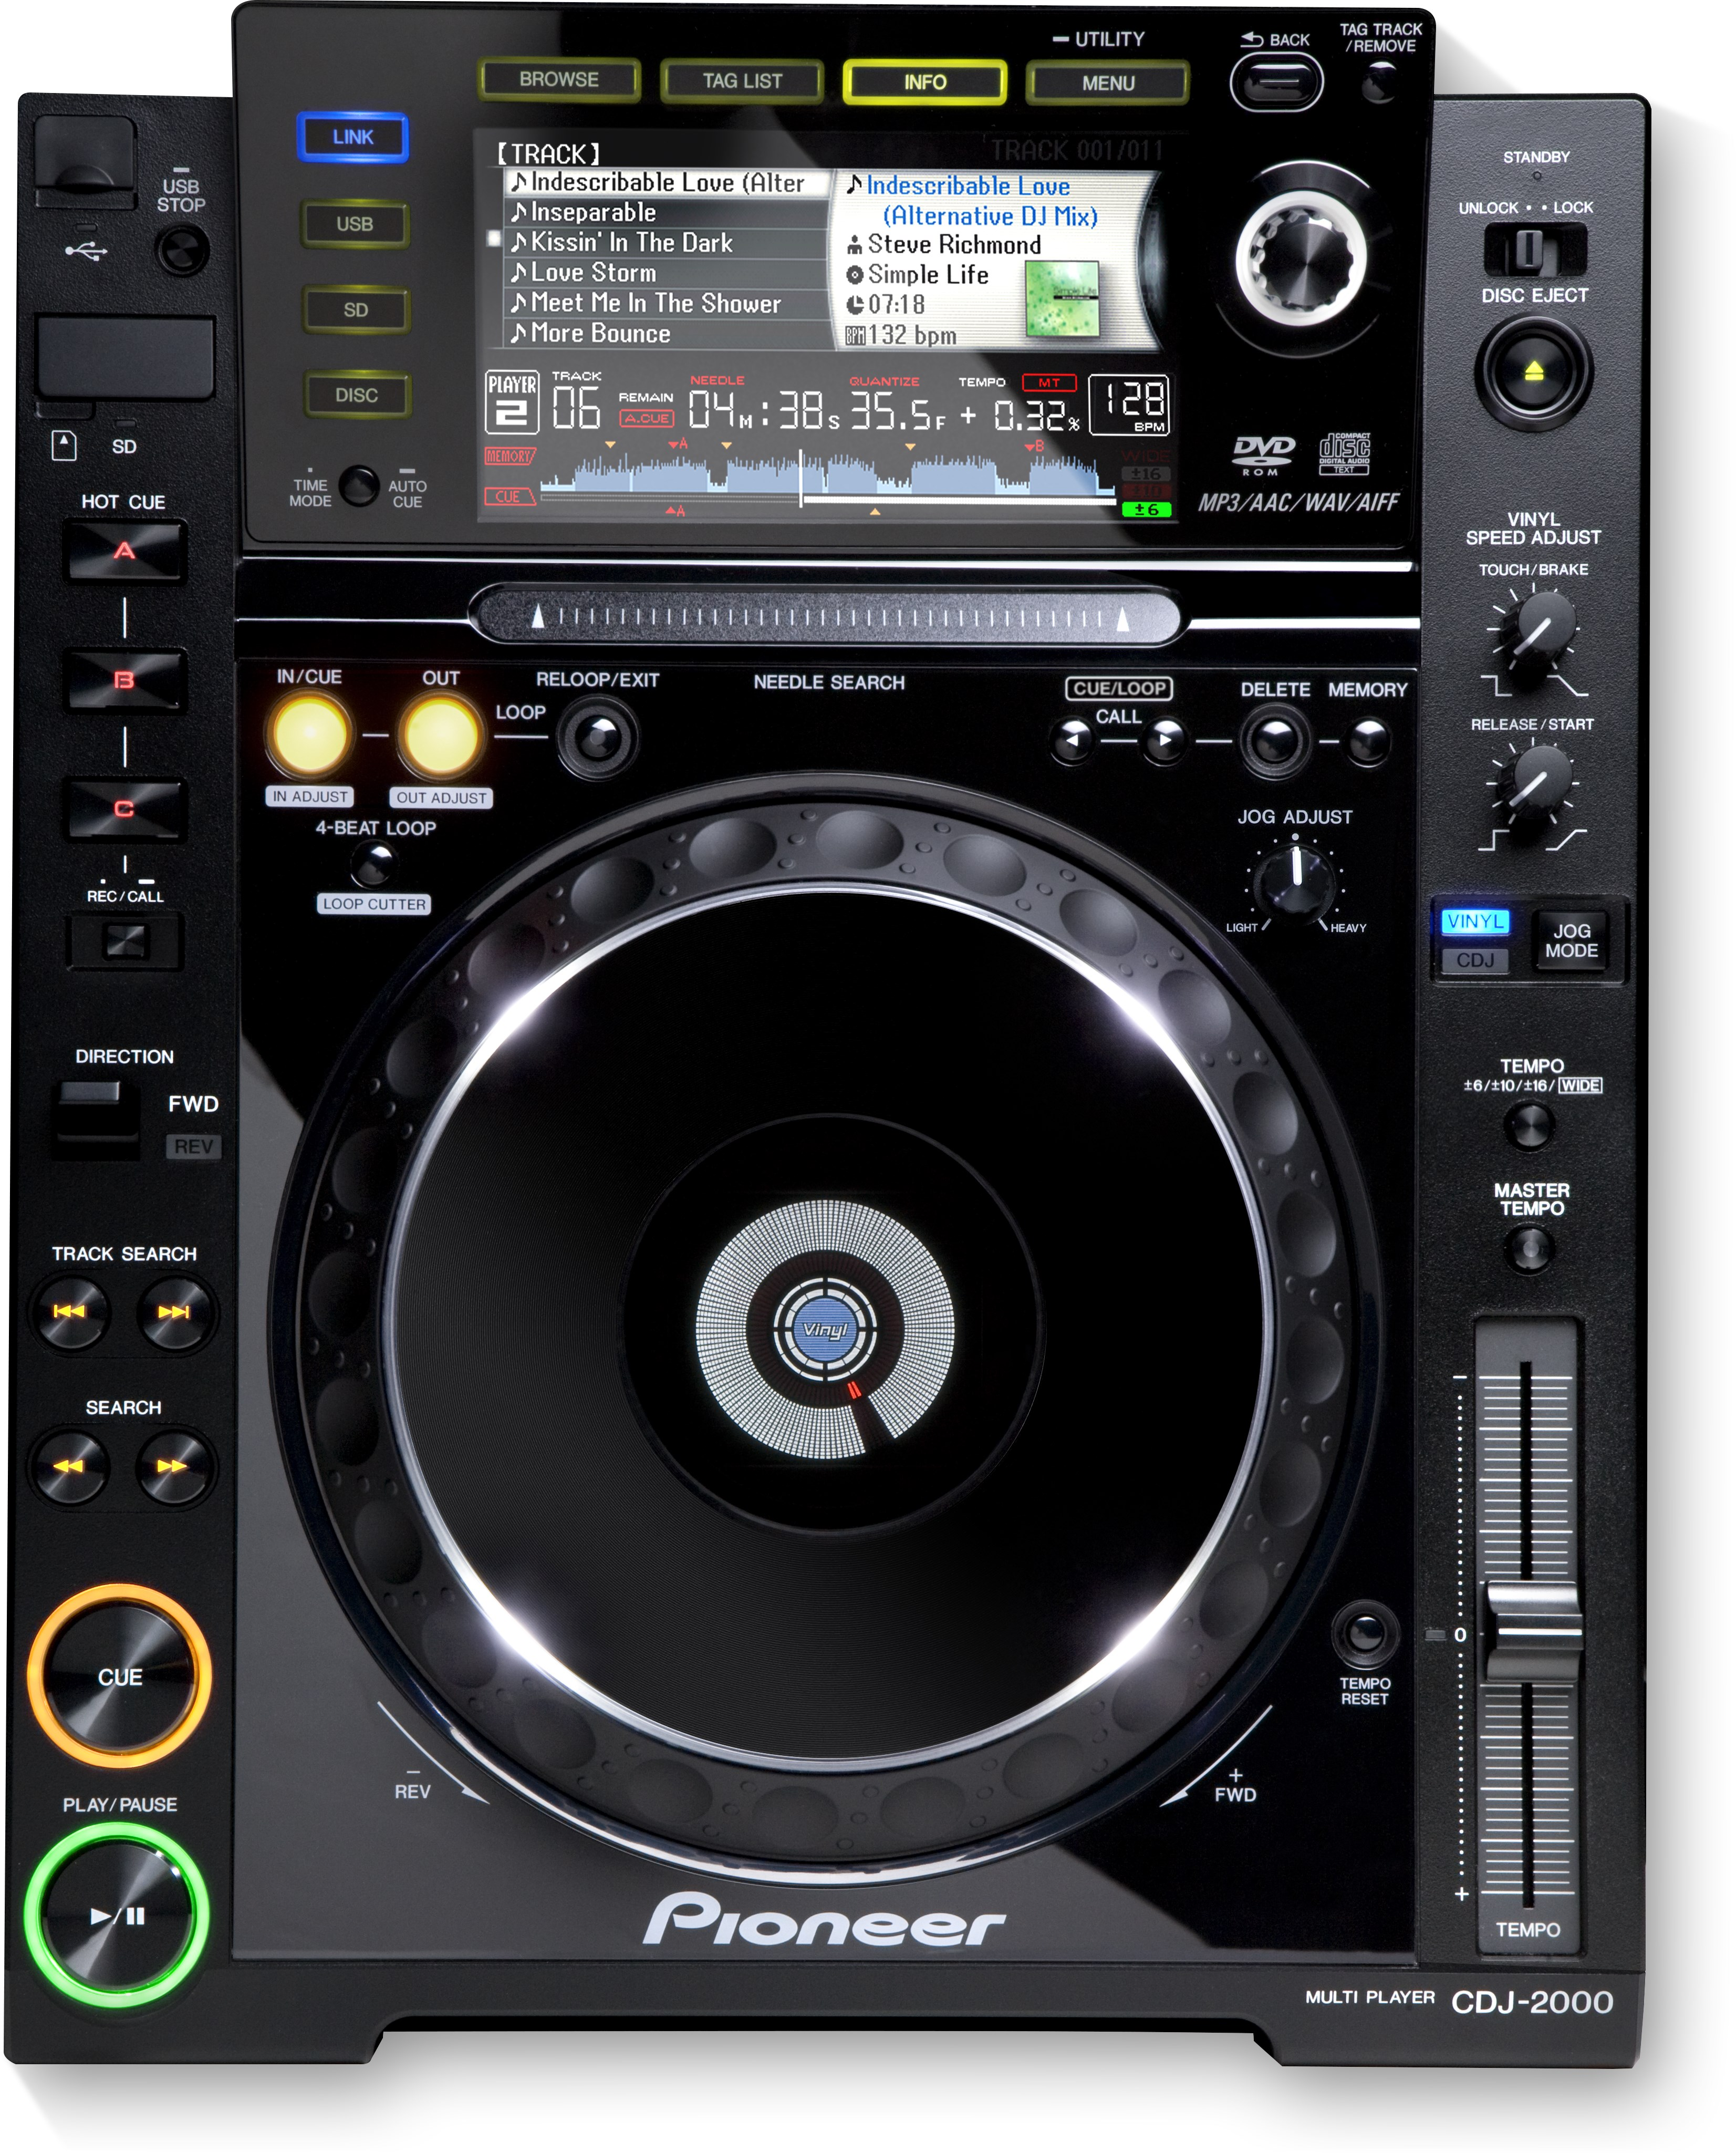 CDJ-2000